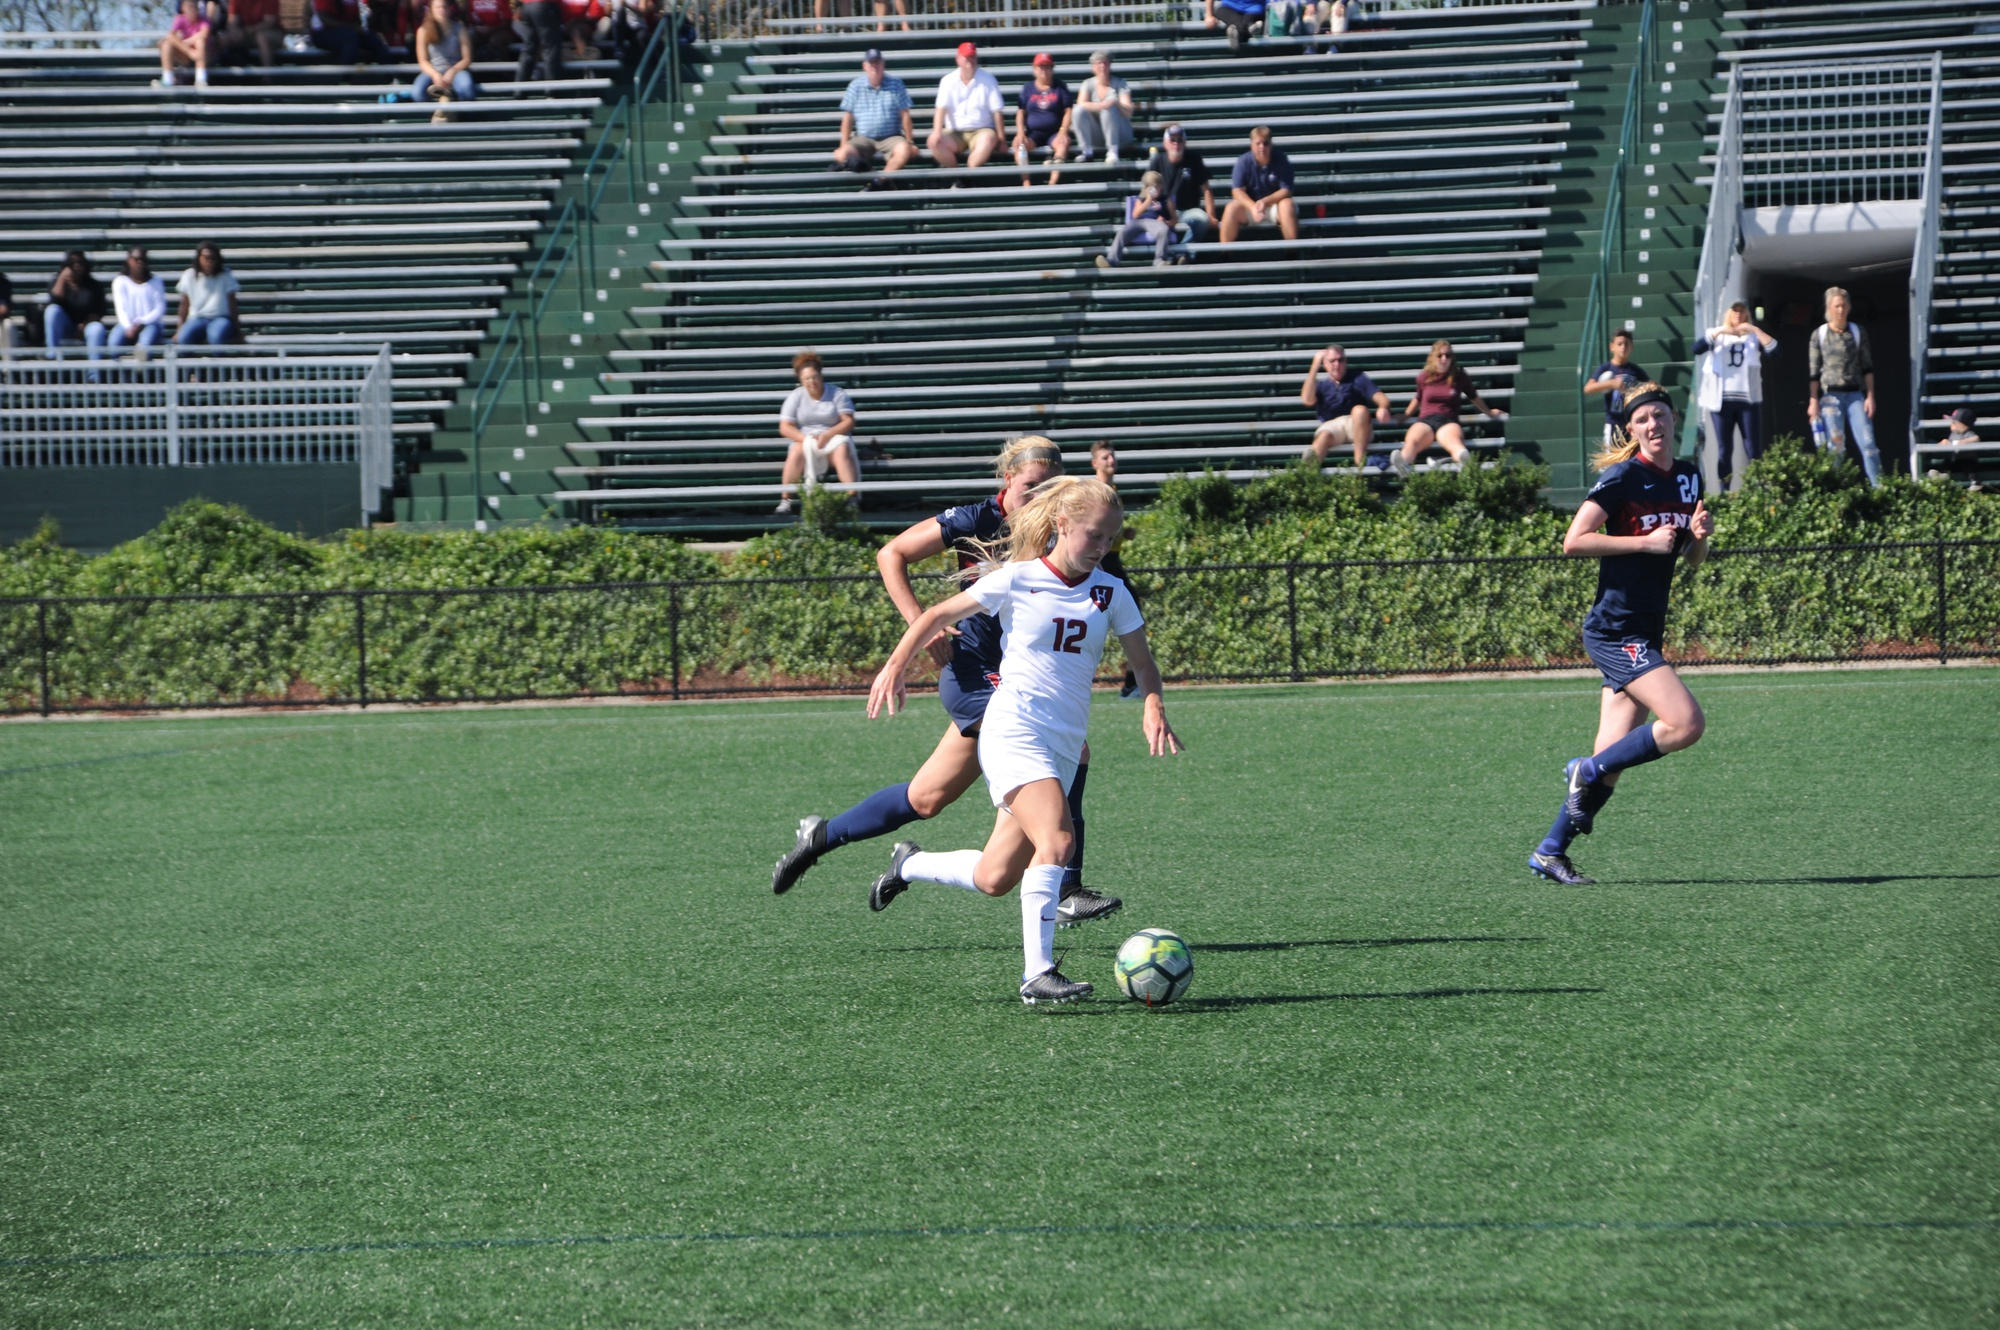 Sophomore forward Murphy Agnew's effort to draw a penalty at the outset of the second half against Syracuse kickstarted the Crimson offense, which went on to net four goals.